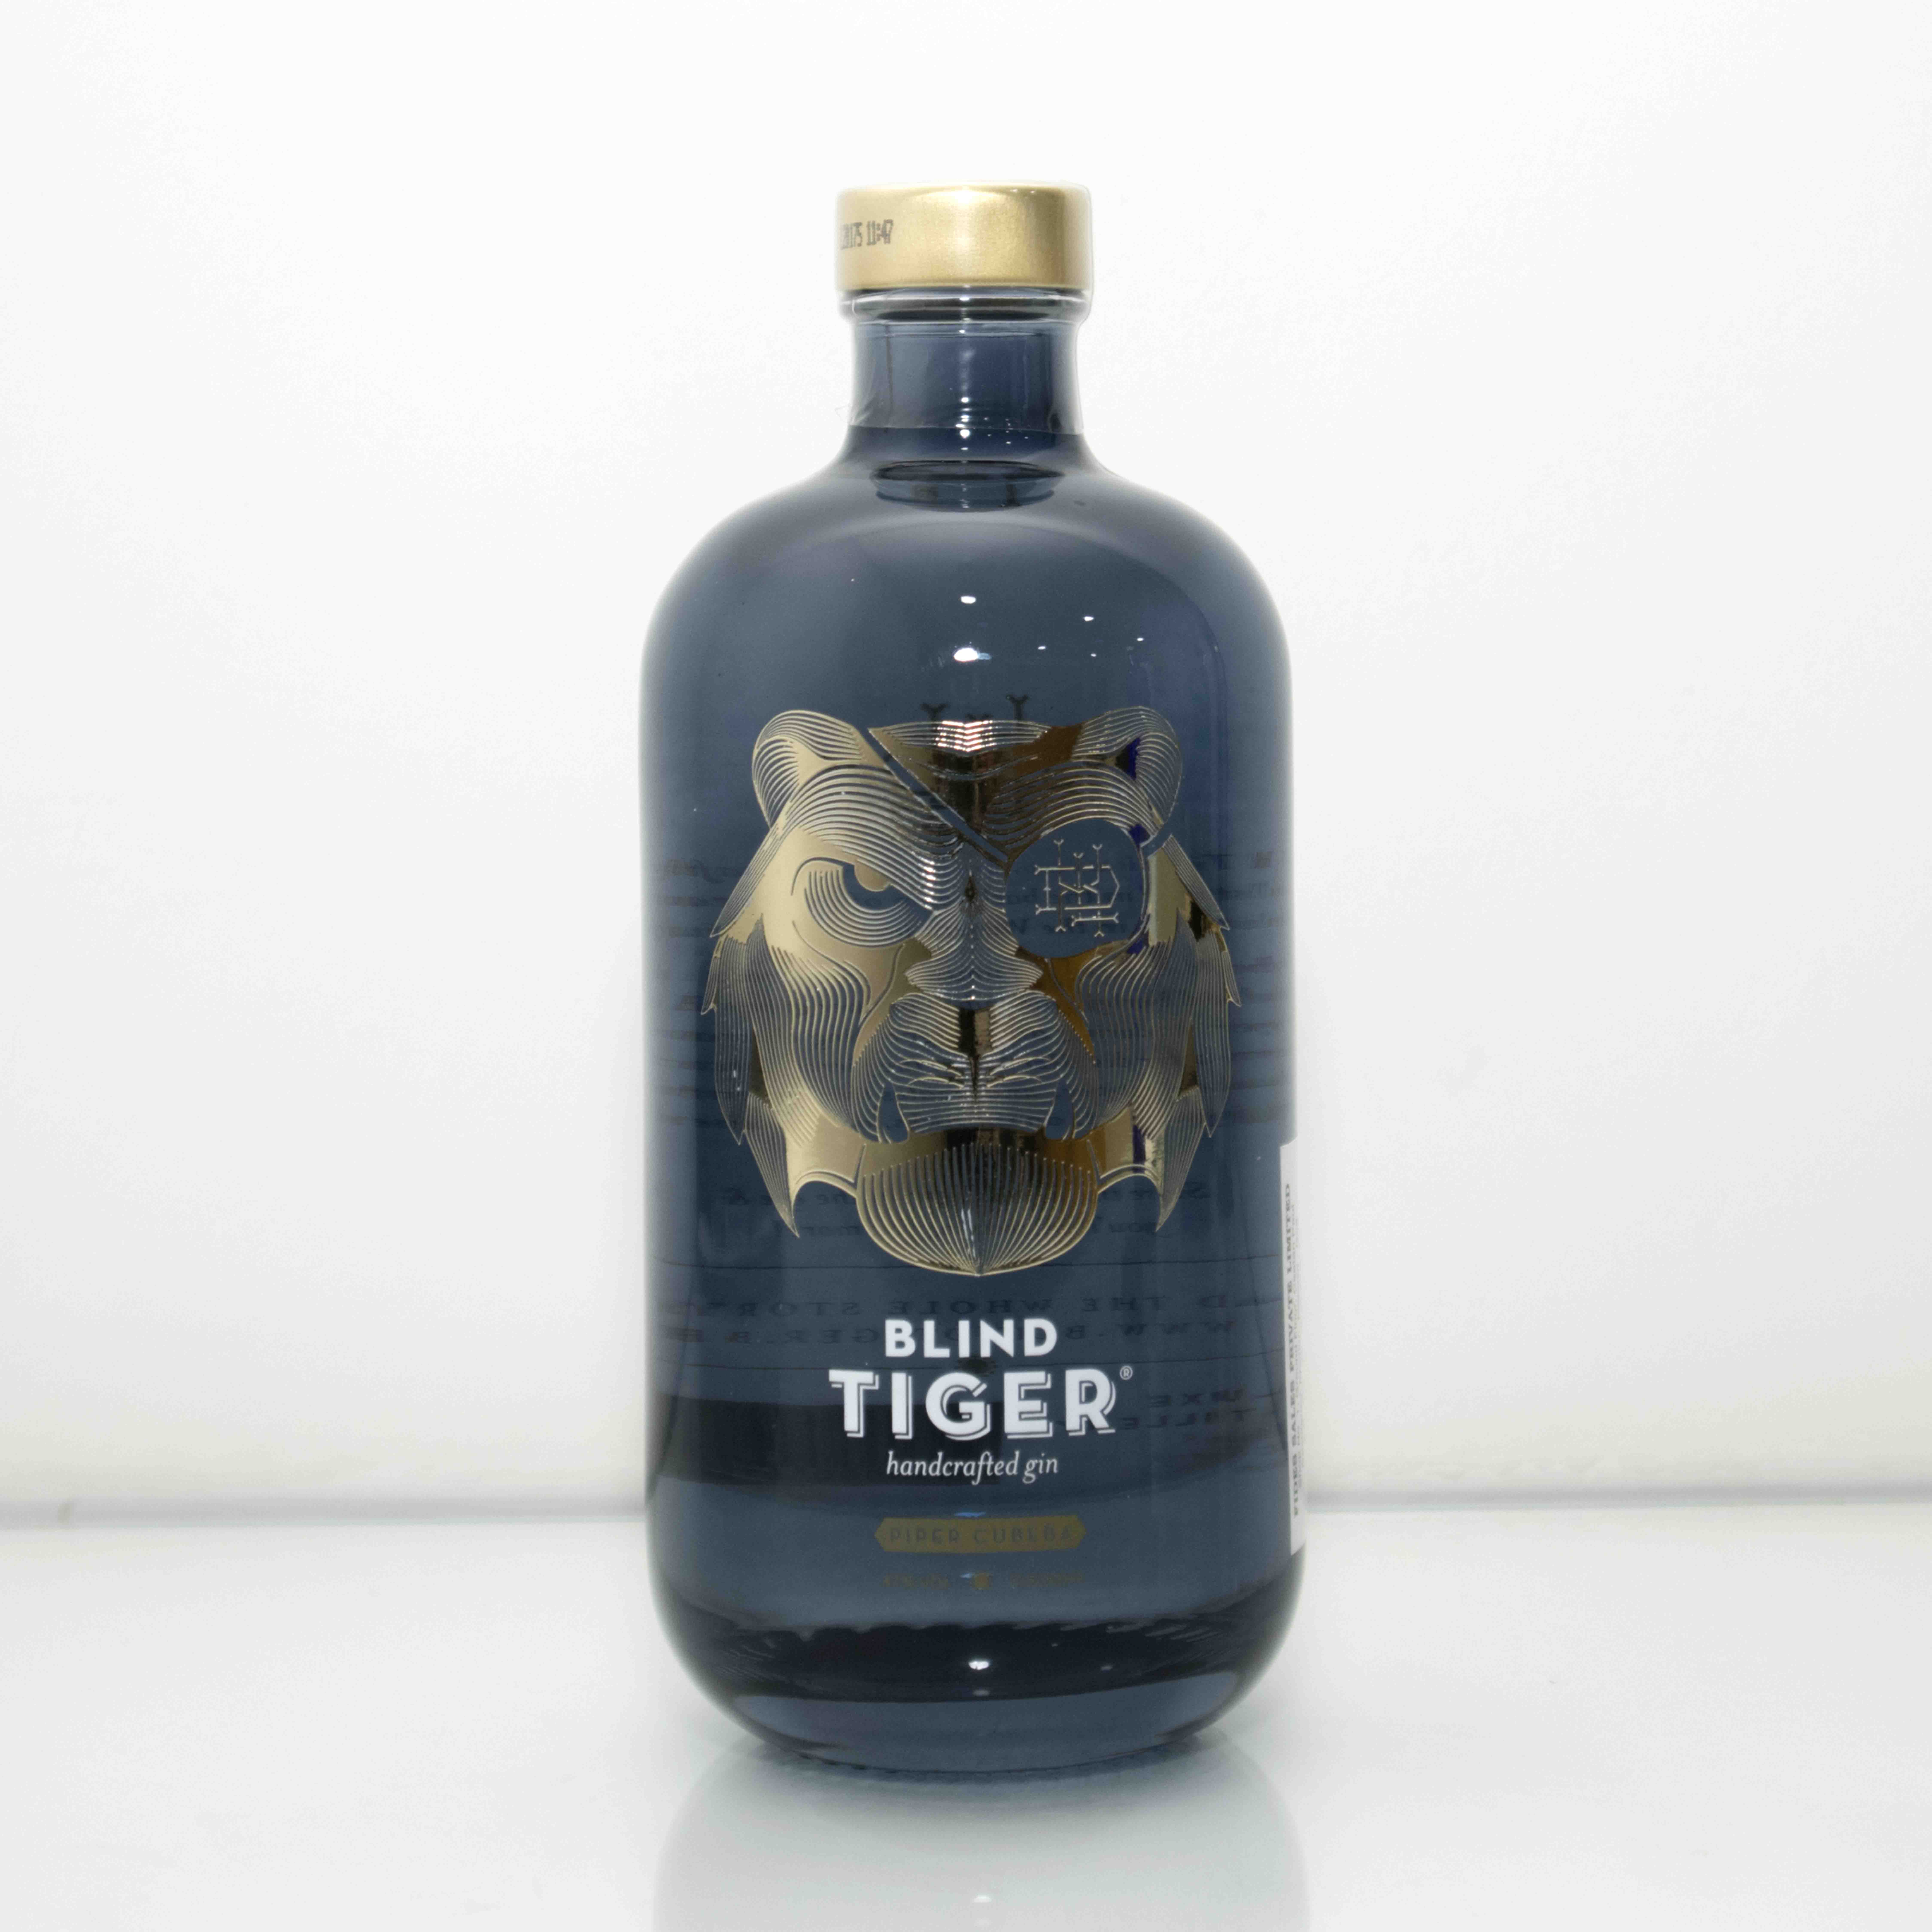 Blind Tiger Handcrafted Gin 500ml